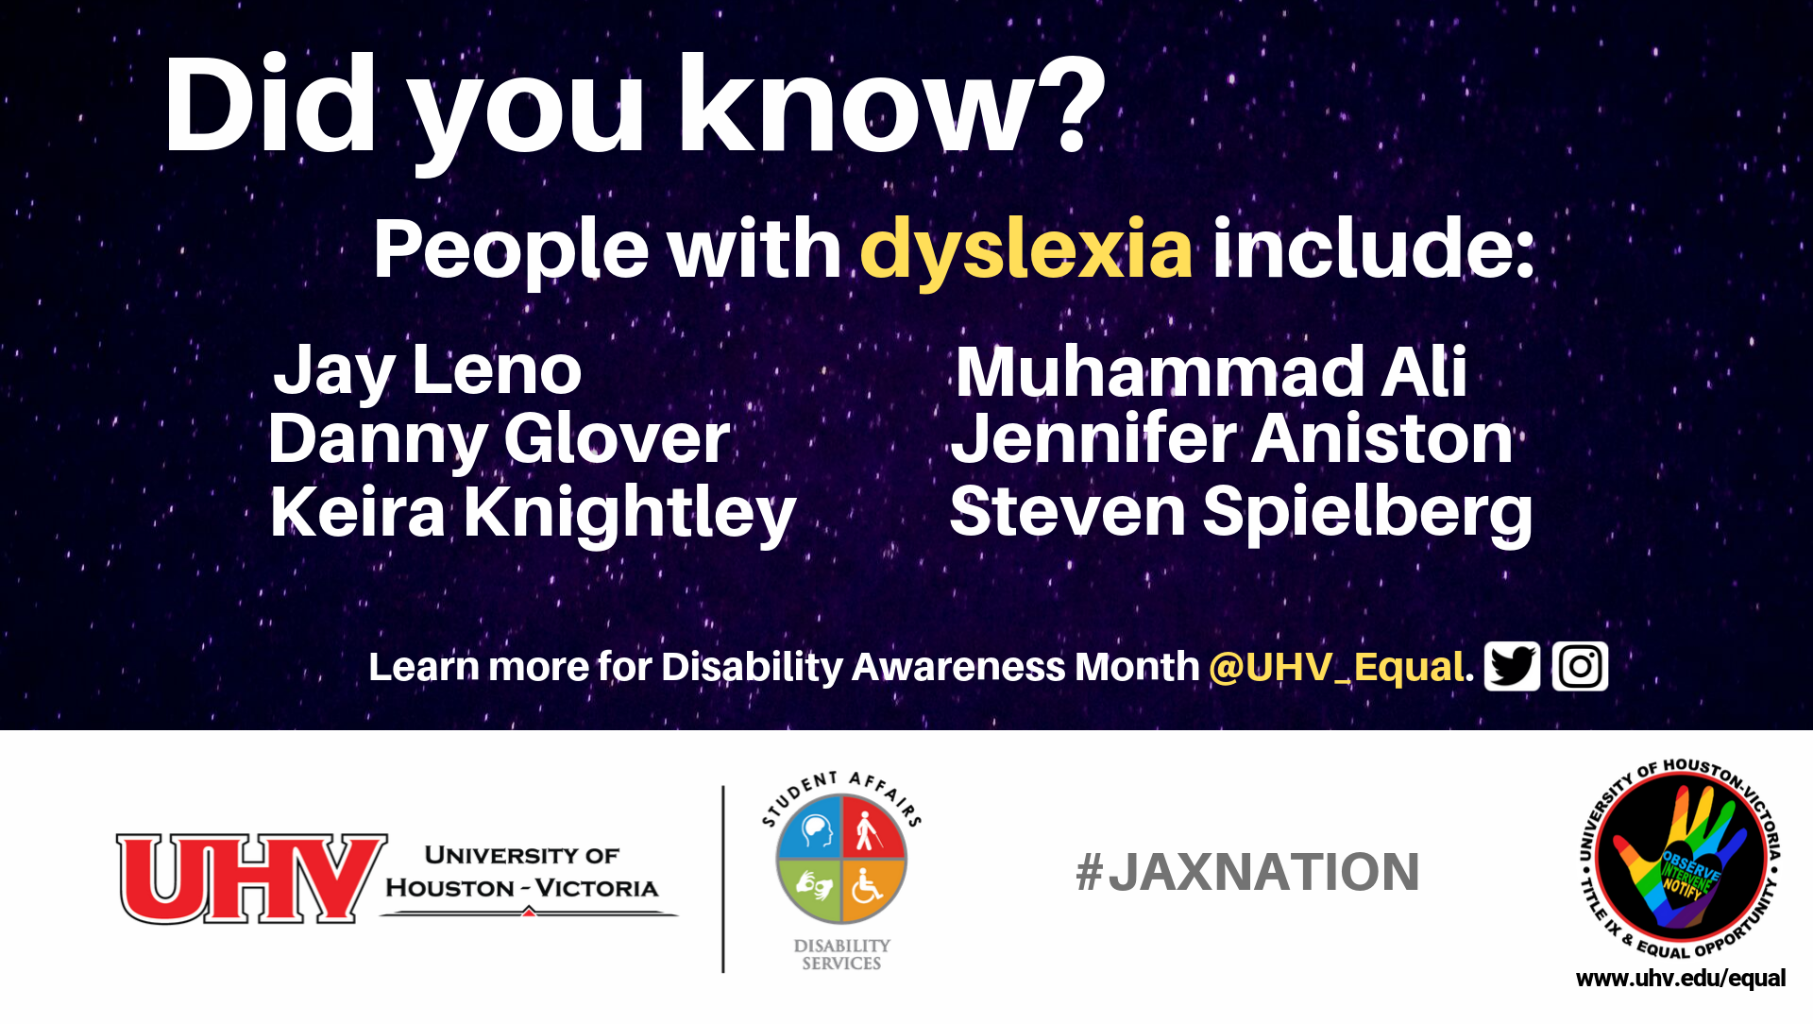 Did you know? People with dyslexia include: Danny Glover, Keira Knightley, Jay Leno, Muhammed Ali, Jennifer Aniston, Steven Spielberg. UHV Disability Services Logo. Learn more for Disability Awareness Month @UHV_Equal.#jaxnation. University of Houston-Victoria Title IX and Equal Opportunity Logo (rainbow hand with heart insert with words Observe, Intervene, Notify).